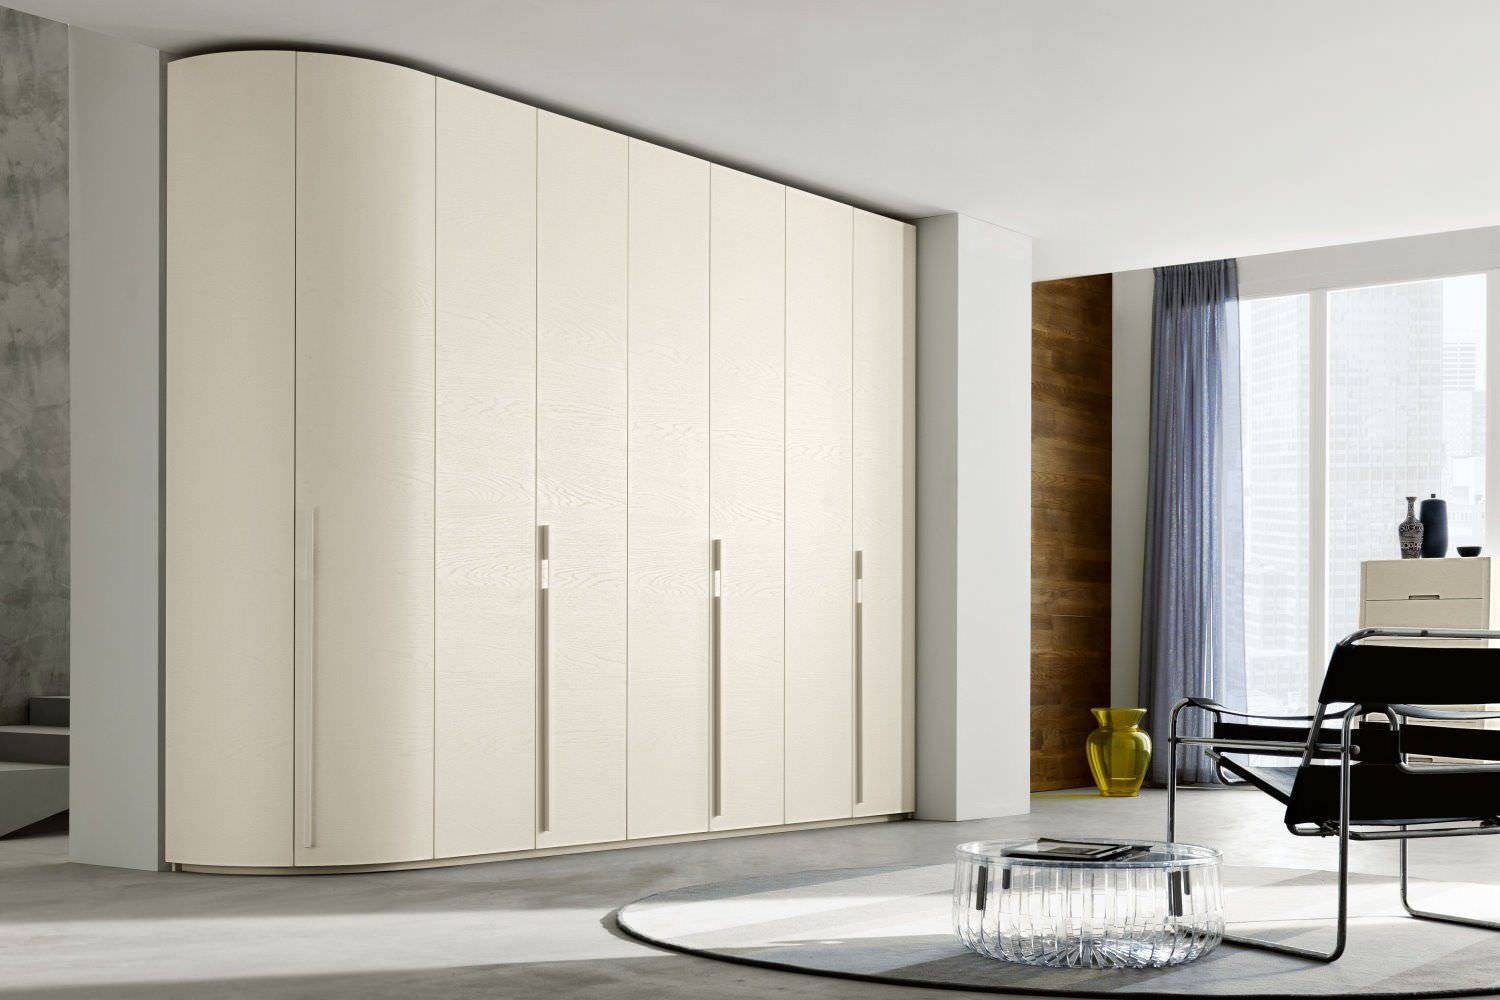 & 30 Best Collection of Curved Corner Wardrobe Doors pezcame.com